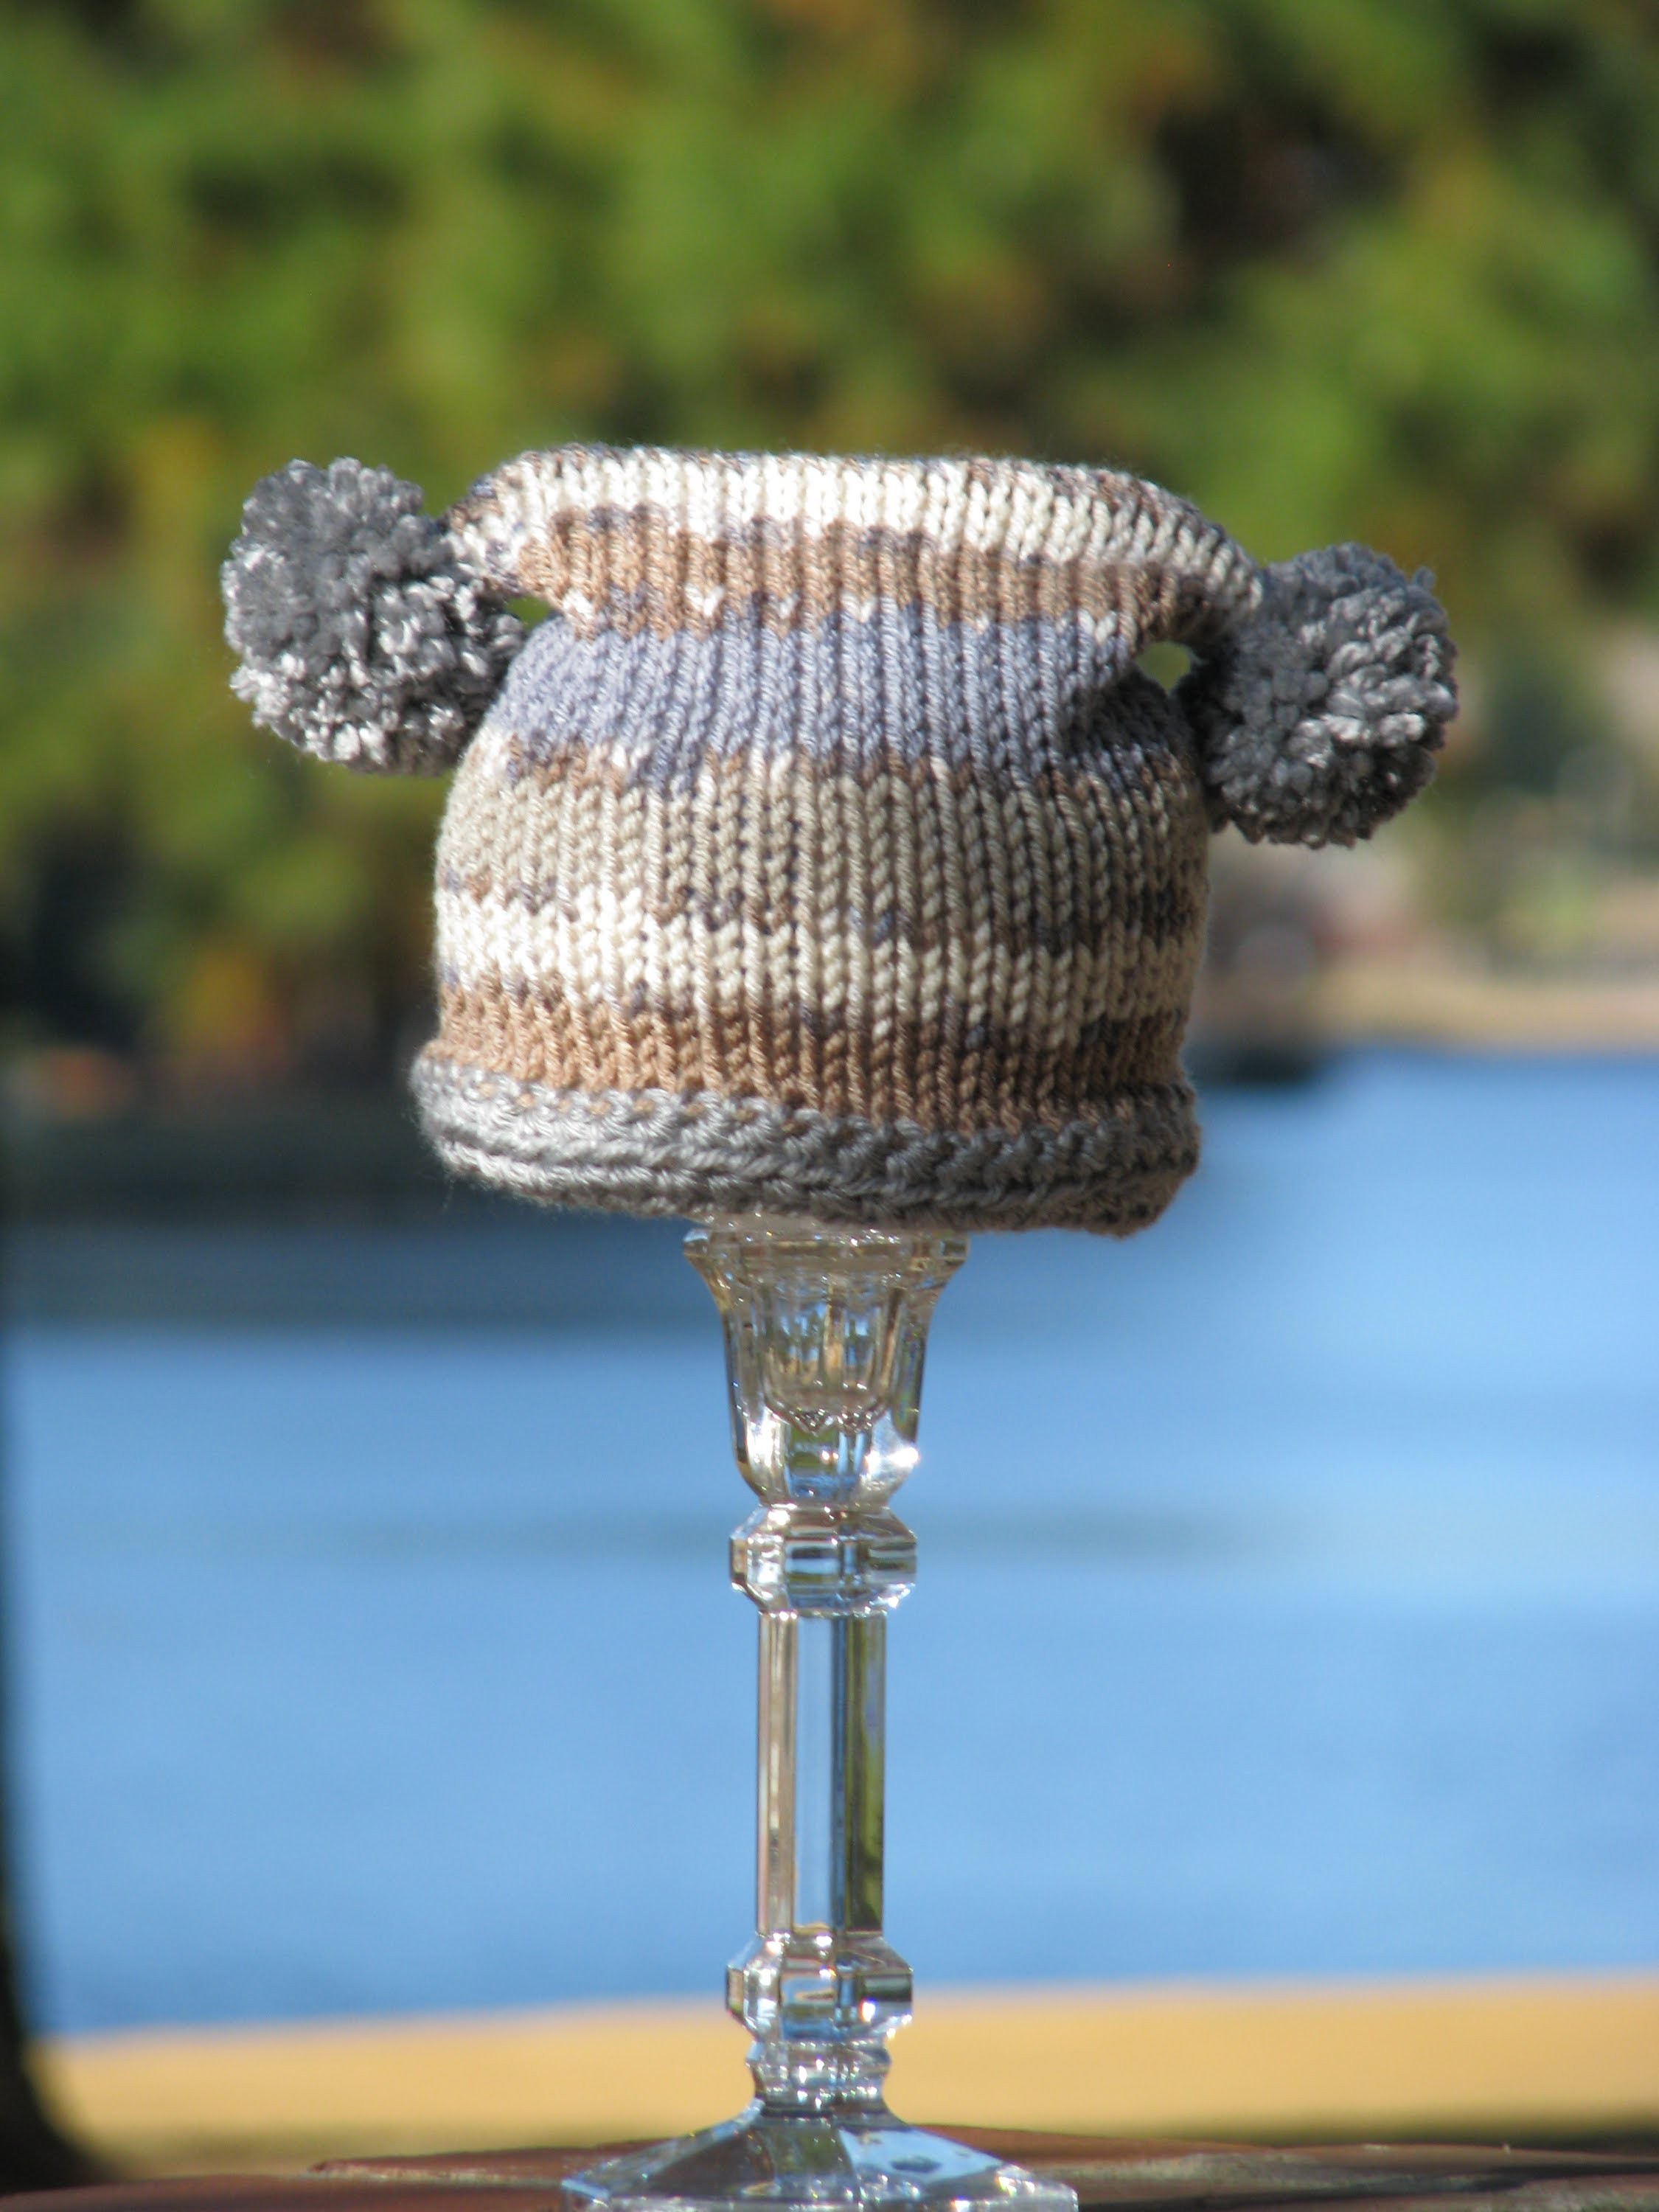 Tutorial: Square Baby Hat for Addi Express, Crochet, Knit or Loom Knit